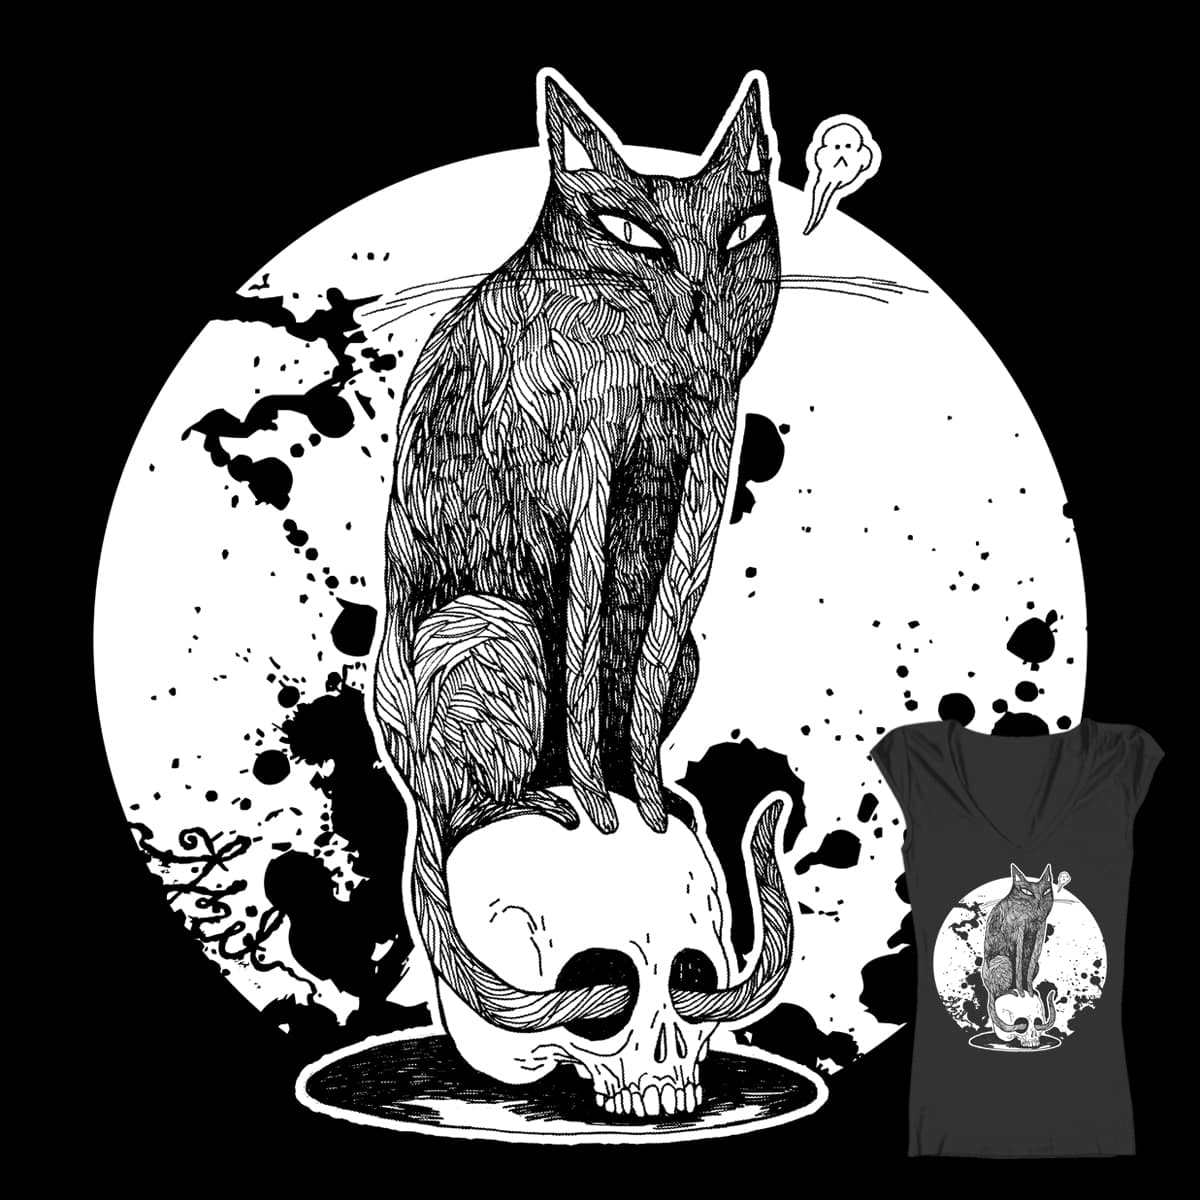 Purrgatory Moonshine by thithit on Threadless